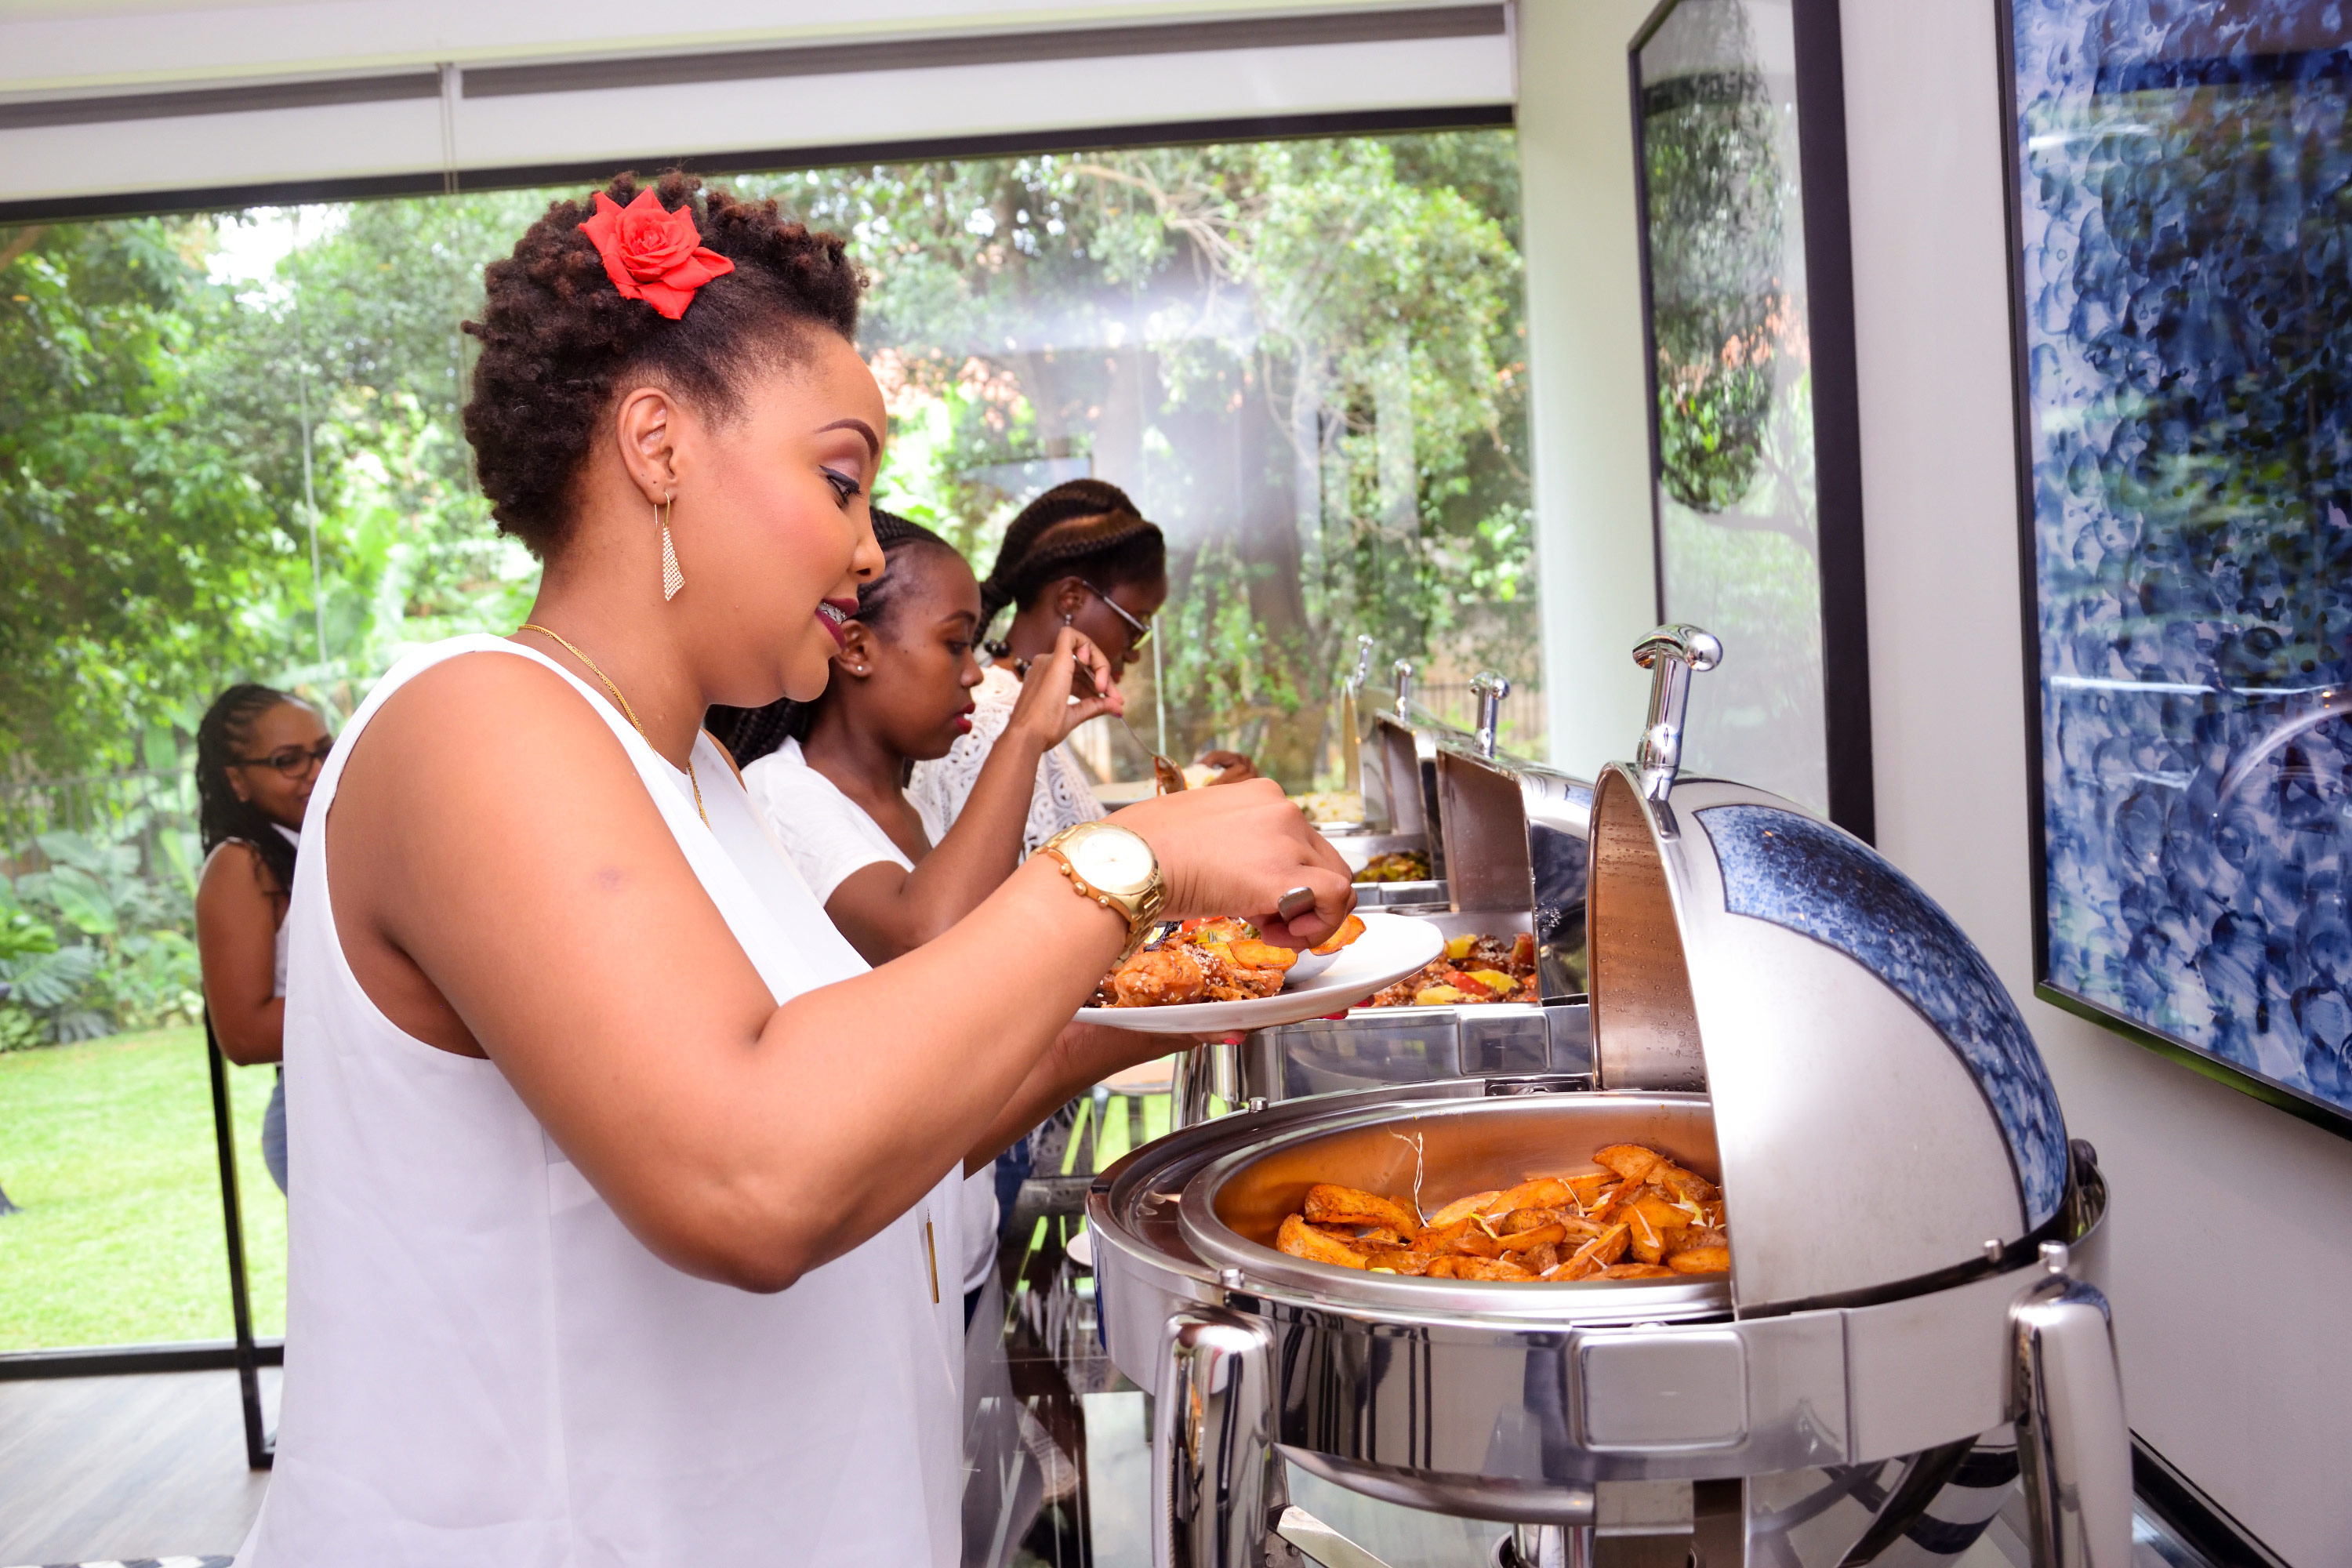 Ladies Serve Food At An Event